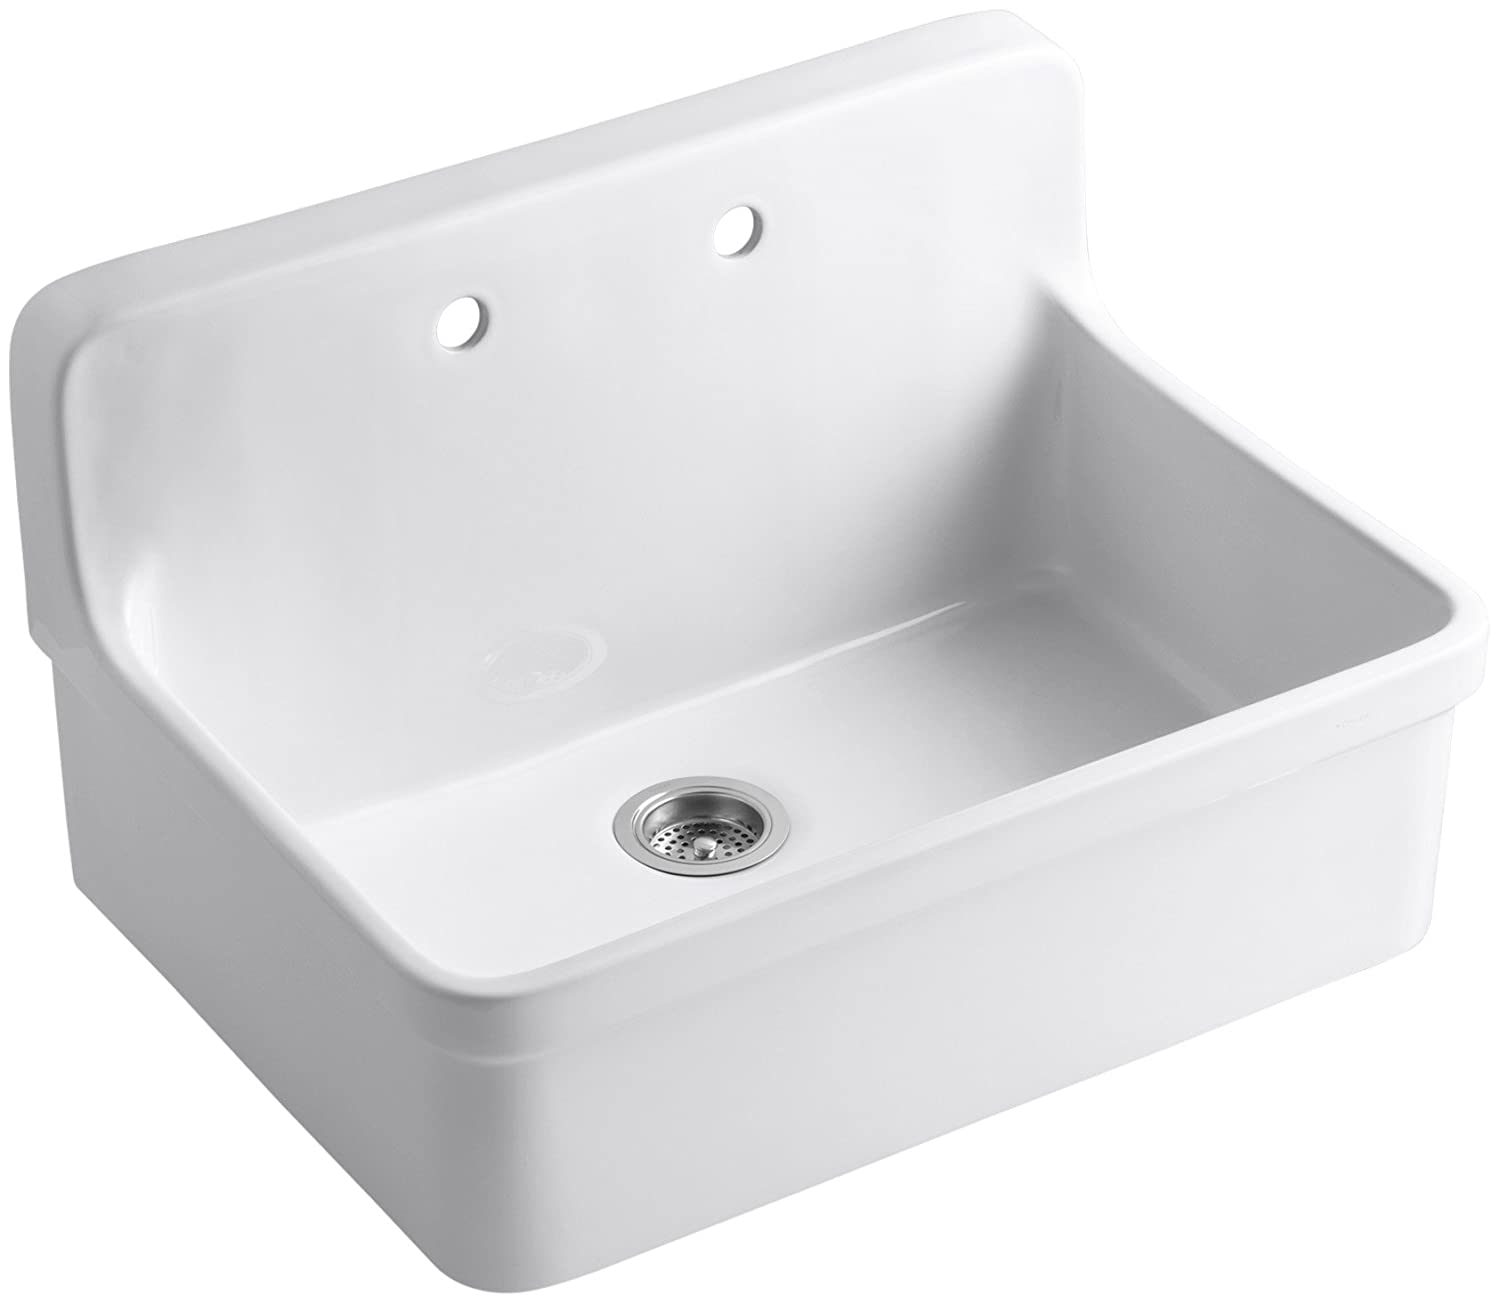 Awesome KOHLER K 12700 0 Gilford Apron Front Wall Mount Kitchen Sink, White    Single Bowl Sinks   Amazon.com